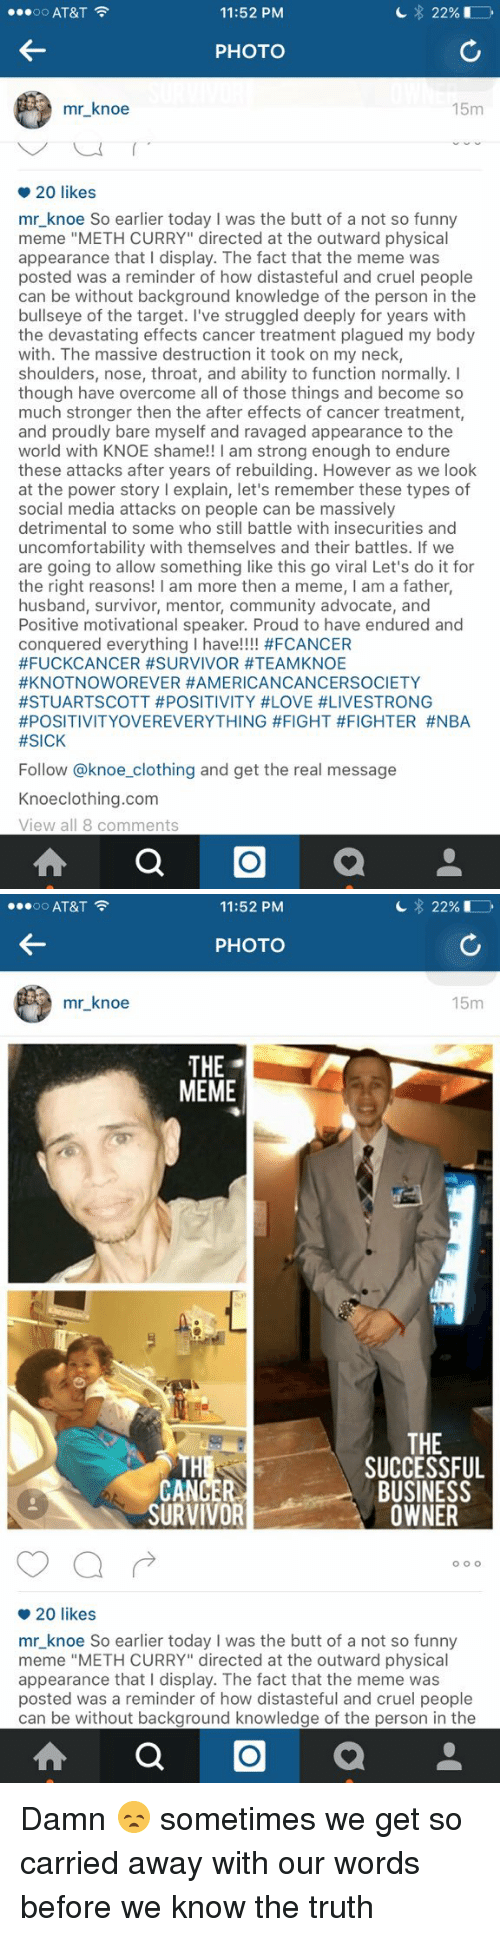 """Blackpeopletwitter, Bodies , and Butt: 11:52 PM  22%  AT&T  OO  PHOTO  mr knoe  15m  o 20 likes  mr knoe So earlier today I was the butt of a not so funny  meme """"METH CURRY"""" directed at the outward physical  appearance that I display. The fact that the meme was  posted was a reminder of how distasteful and cruel people  can be without background knowledge of the person in the  bullseye of the target. I've struggled deeply for years with  the devastating effects cancer treatment plagued my body  with. The massive destruction it took on my neck,  shoulders, nose, throat, and ability to function normally. I  though have overcome all of those things and become so  much stronger then the after effects of cancer treatment,  and proudly bare myself and ravaged appearance to the  world with KNOE shame!! I am strong enough to endure  these attacks after years of rebuilding. However as we look  at the power story explain, let's remember these types of  social media attacks on people can be massively  detrimental to some who still battle with insecurities and  uncomfortability with themselves and their battles. If we  are going to allow something like this go viral Let's do it for  the right reasons  I am more then a meme, I am a father,  husband, survivor, mentor, community advocate, and  Positive motivational speaker. Proud to have endured and  conquered everything I have  #FCANCER  #FUCKCANCER #SURVIVOR #TEAMKNOE  #KNOTNOWOREVER HAMERICANCANCERSOCIETY  #STUARTSCOTT #POSITIVITY #LOVE #LIVESTRONG  #POSITIVITYOVEREVERYTHING #FIGHT #FIGHTER #NBA  #SICK  Follow @knoe clothing and get the real message  Knoe clothing.com  View all 8 comments  a   11:52 PM  22%  OO  AT&T  PHOTO  mr knoe  15m  THE  MEME  THE  SUCCESSFUL  BUSINESS  SURVIVOR  OWNER  O OO  20 likes  mr knoe So earlier today I was the butt of a not so funny  meme """"METH CURRY"""" directed at the outward physical  appearance that I display. The fact that the meme was  posted was a reminder of how distasteful and cruel people"""